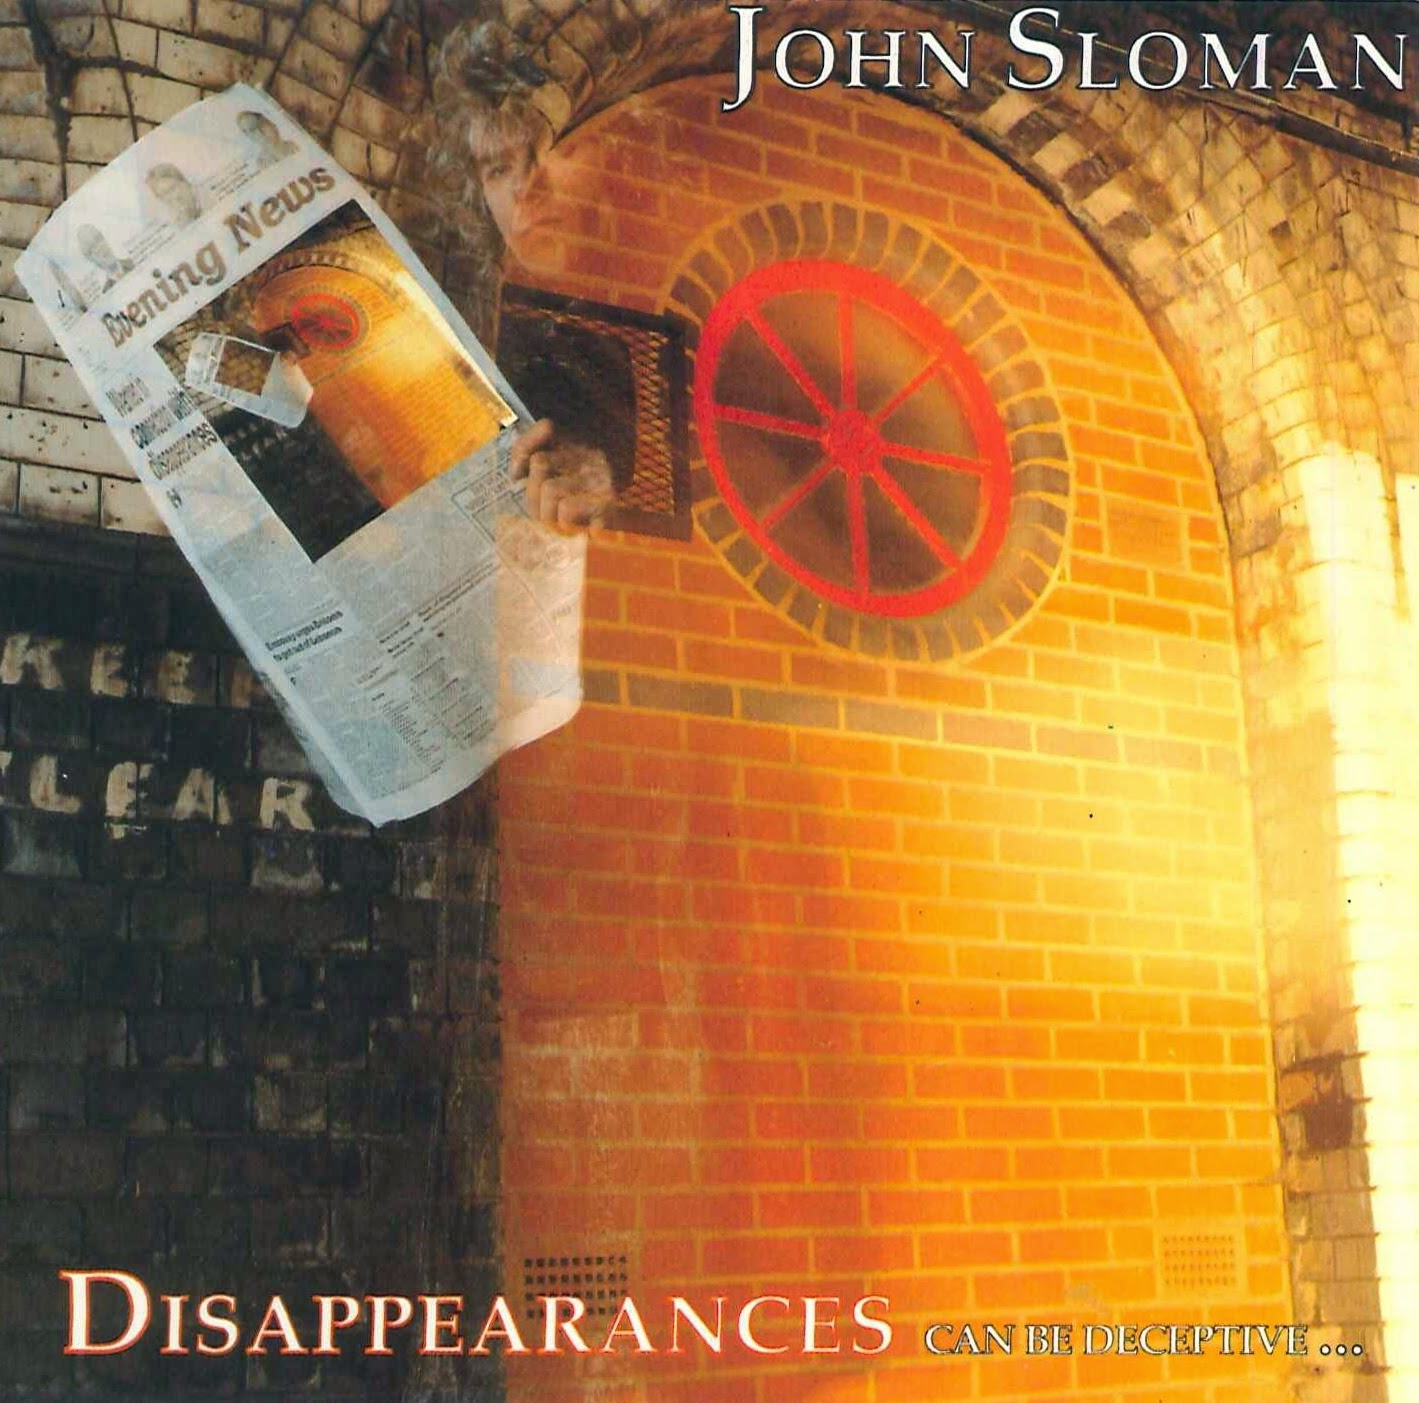 John Sloman Disappearances can be deceptive 1989 aor melodic rock